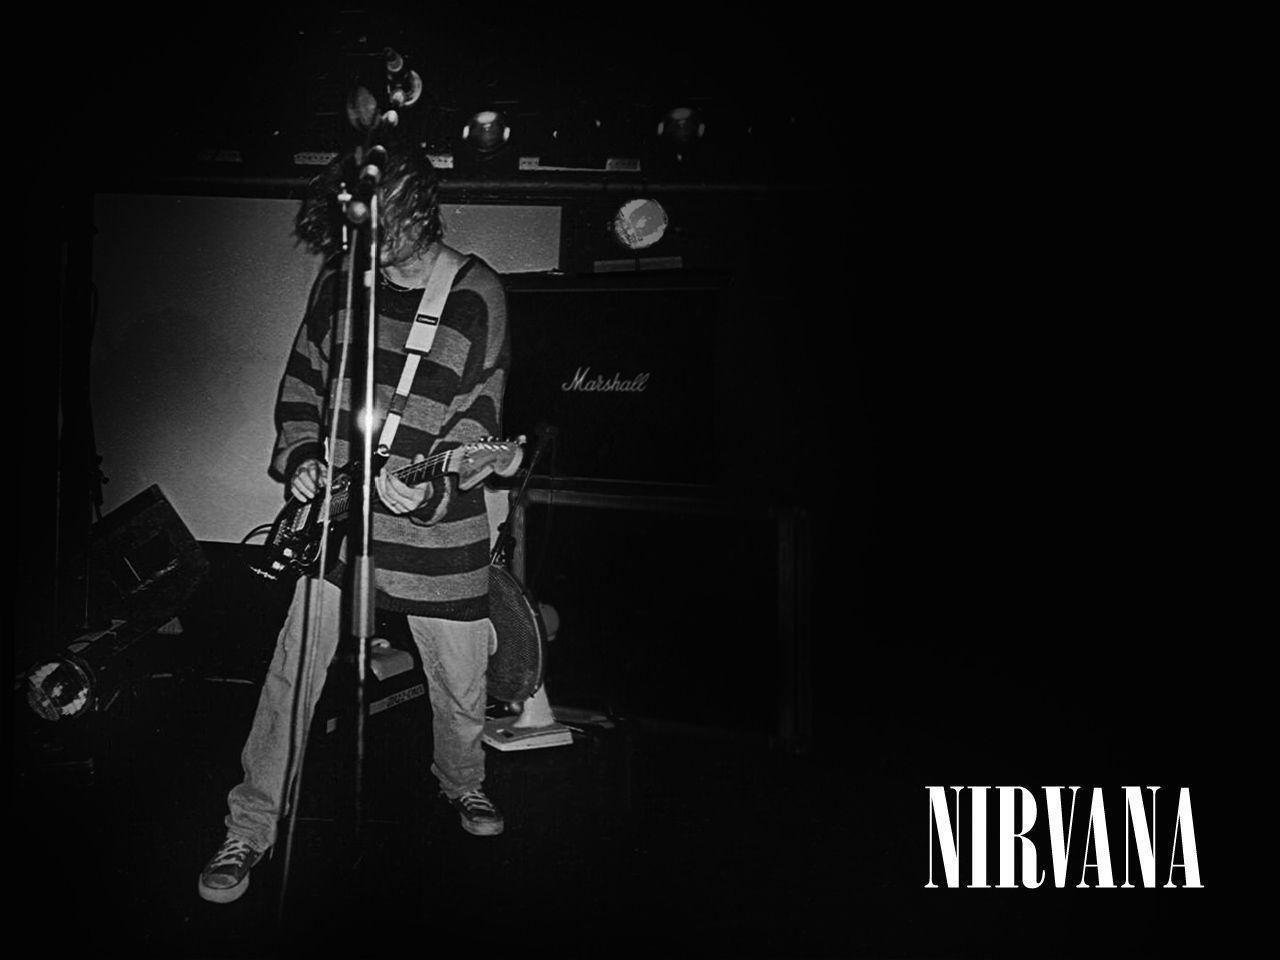 Nirvana logo wallpapers wallpaper cave for Wallpaper wallpaper wallpaper